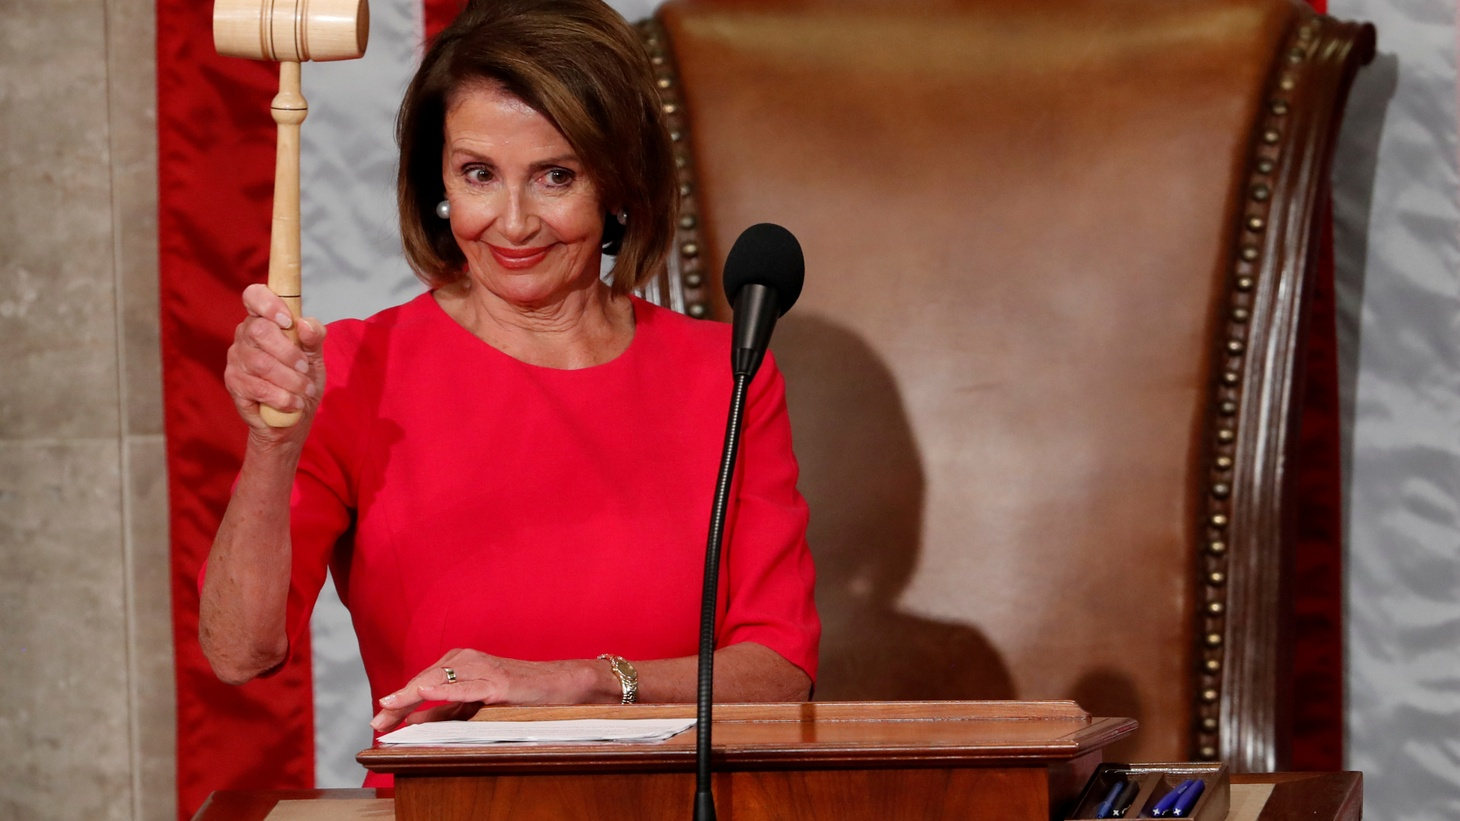 House Speaker-delegate Nancy Pelosi (D-CA) raises the gavel after being elected as House Speaker as the U.S. House of Representatives meets for the start of the 116th Congress inside the House Chamber on Capitol Hill in Washington, U.S., January 3, 2019.